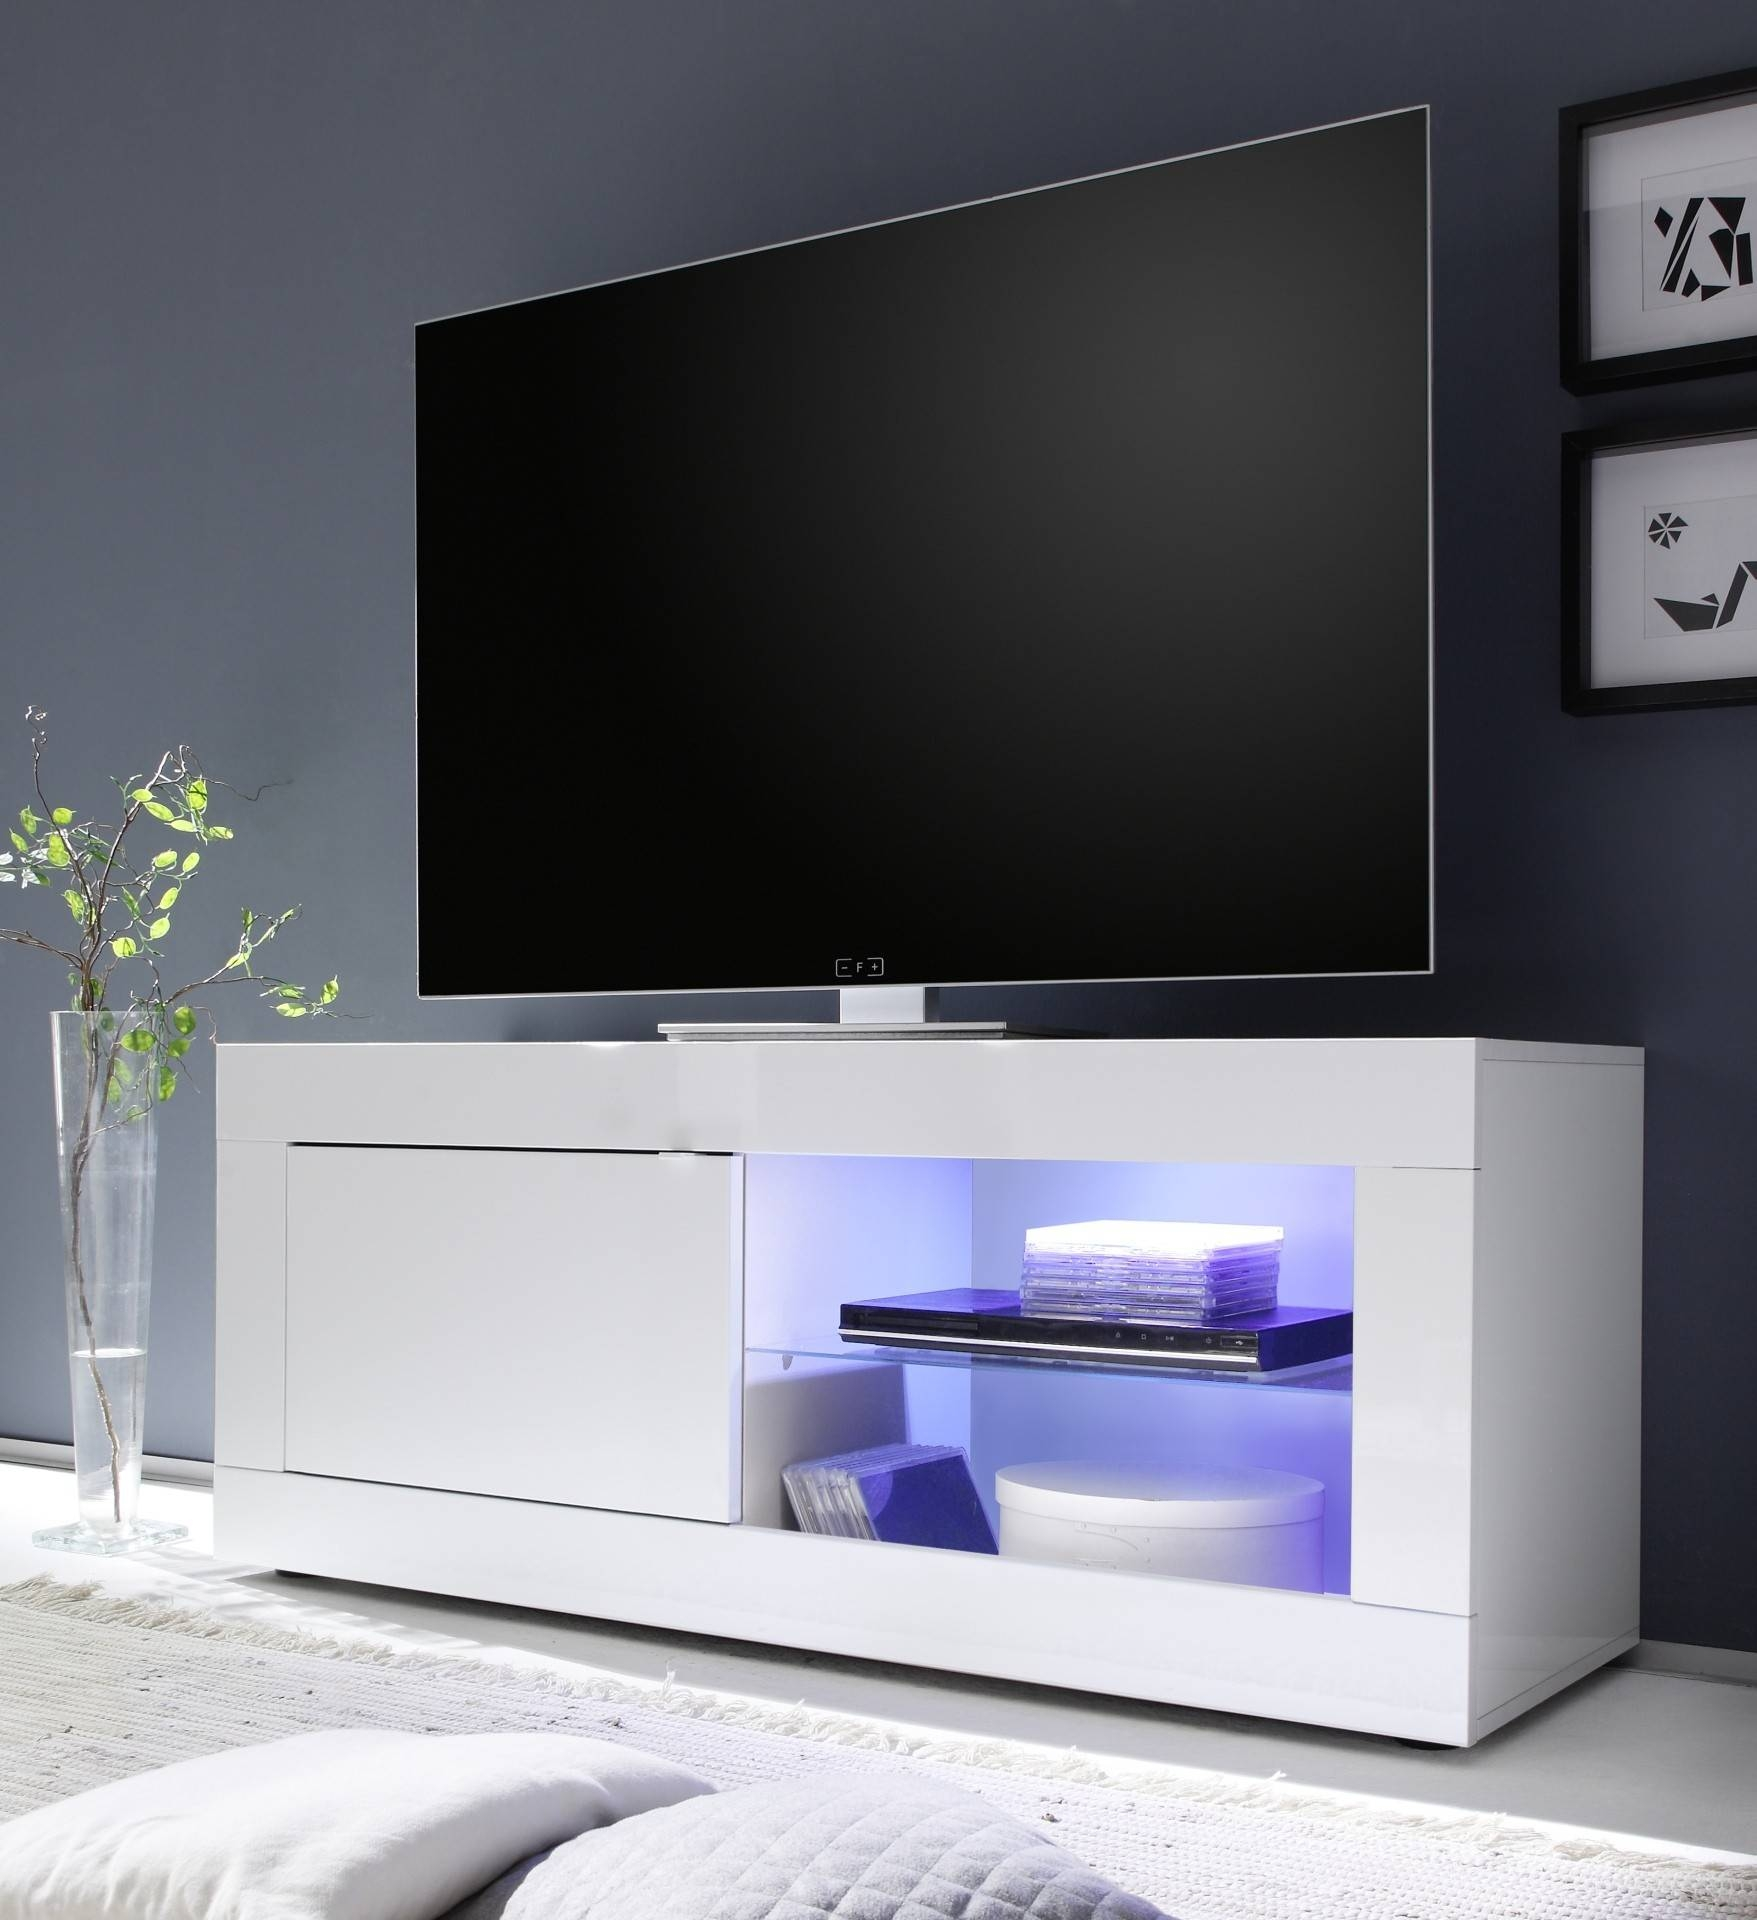 Dolcevita Gloss Tv Stand - Tv Stands - Sena Home Furniture inside White Gloss Tv Cabinets (Image 4 of 15)